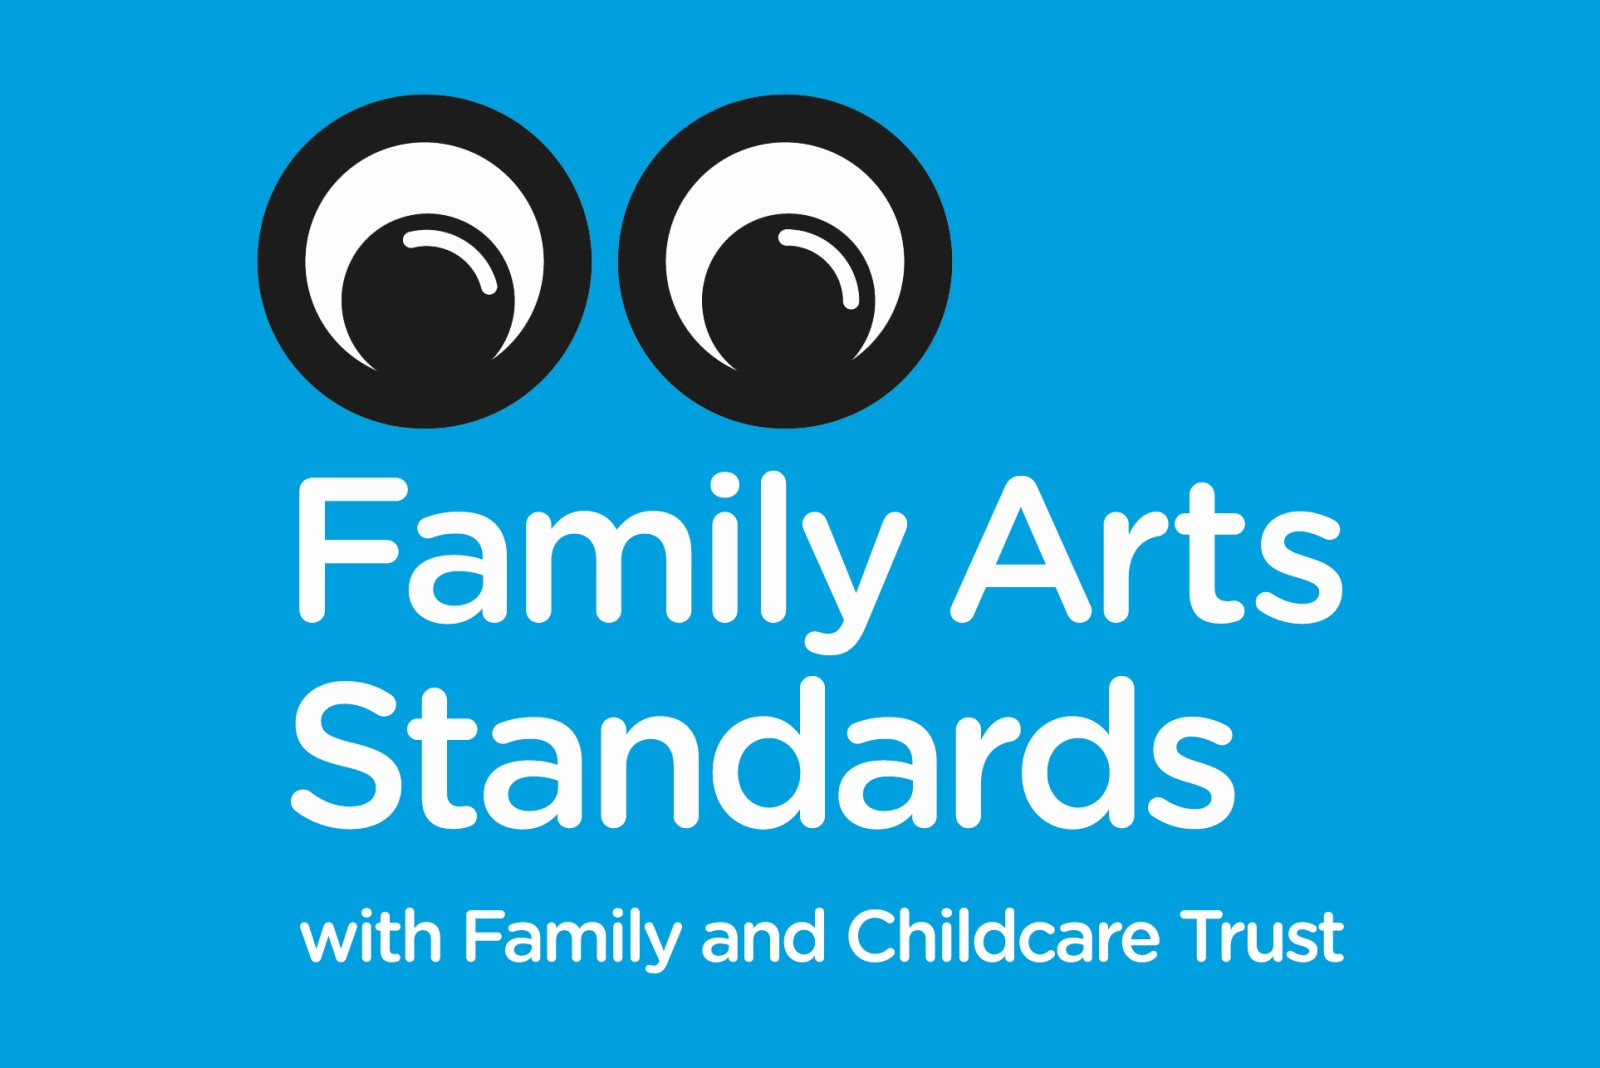 Family Arts Standards logo.jpg